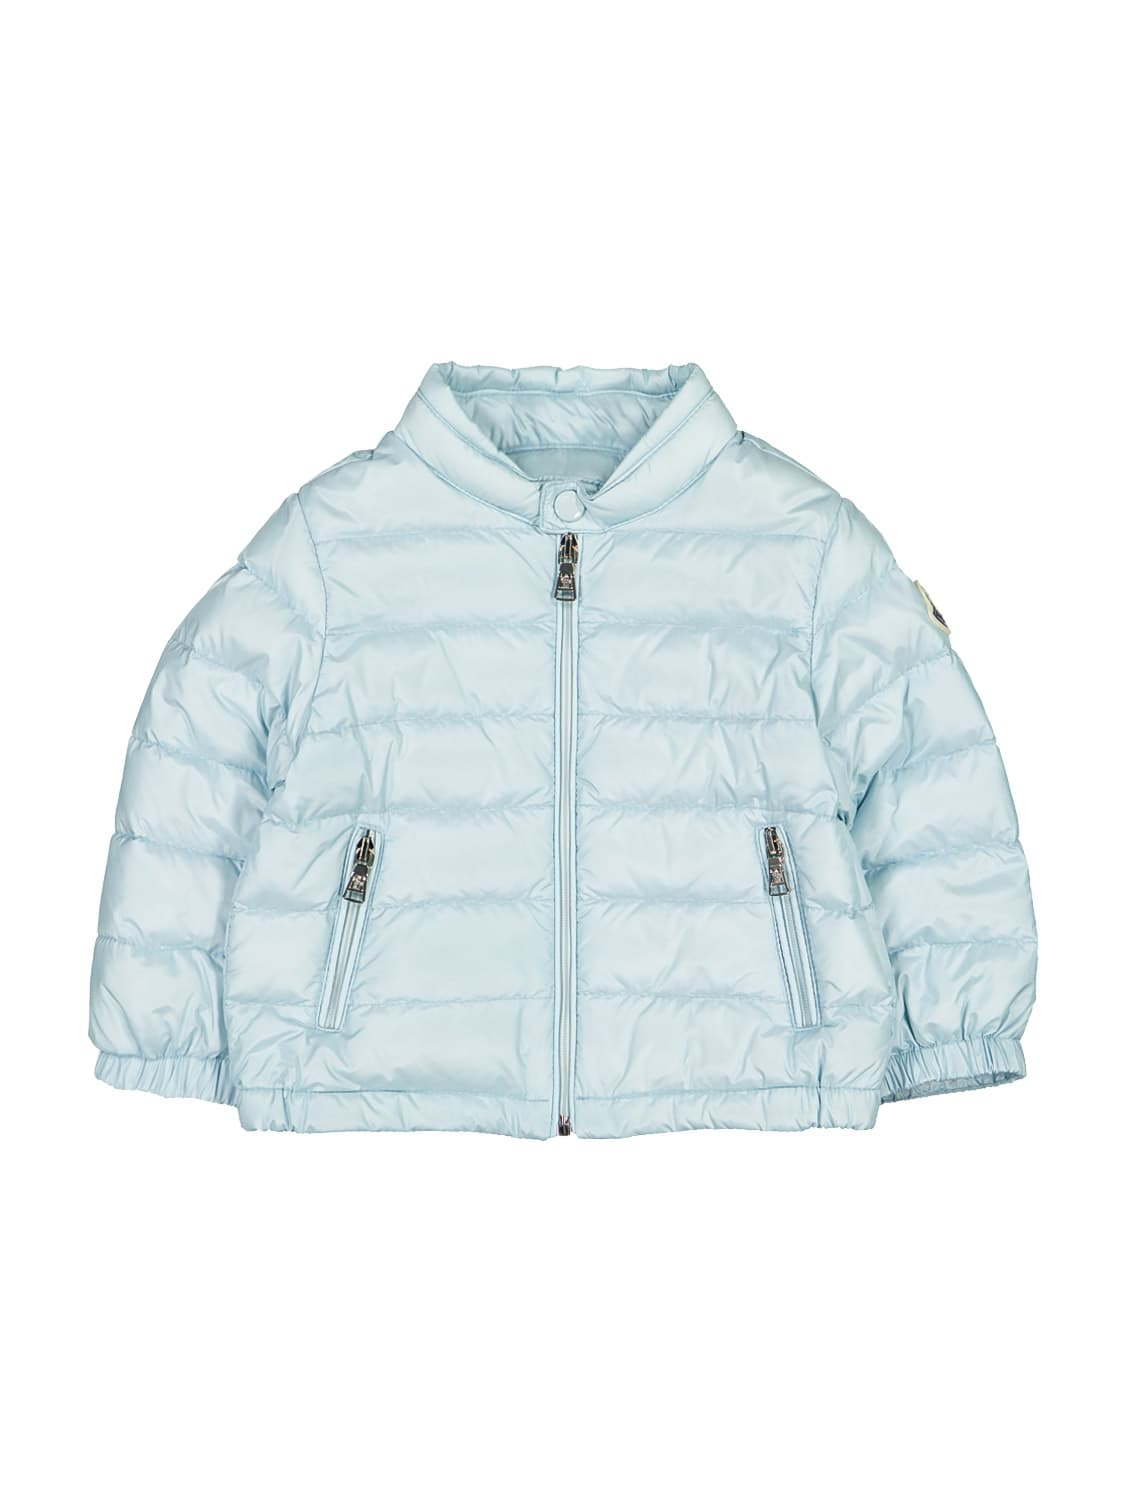 Moncler KIDS JACKET ACORUS JACKET FOR FOR BOYS AND FOR GIRLS